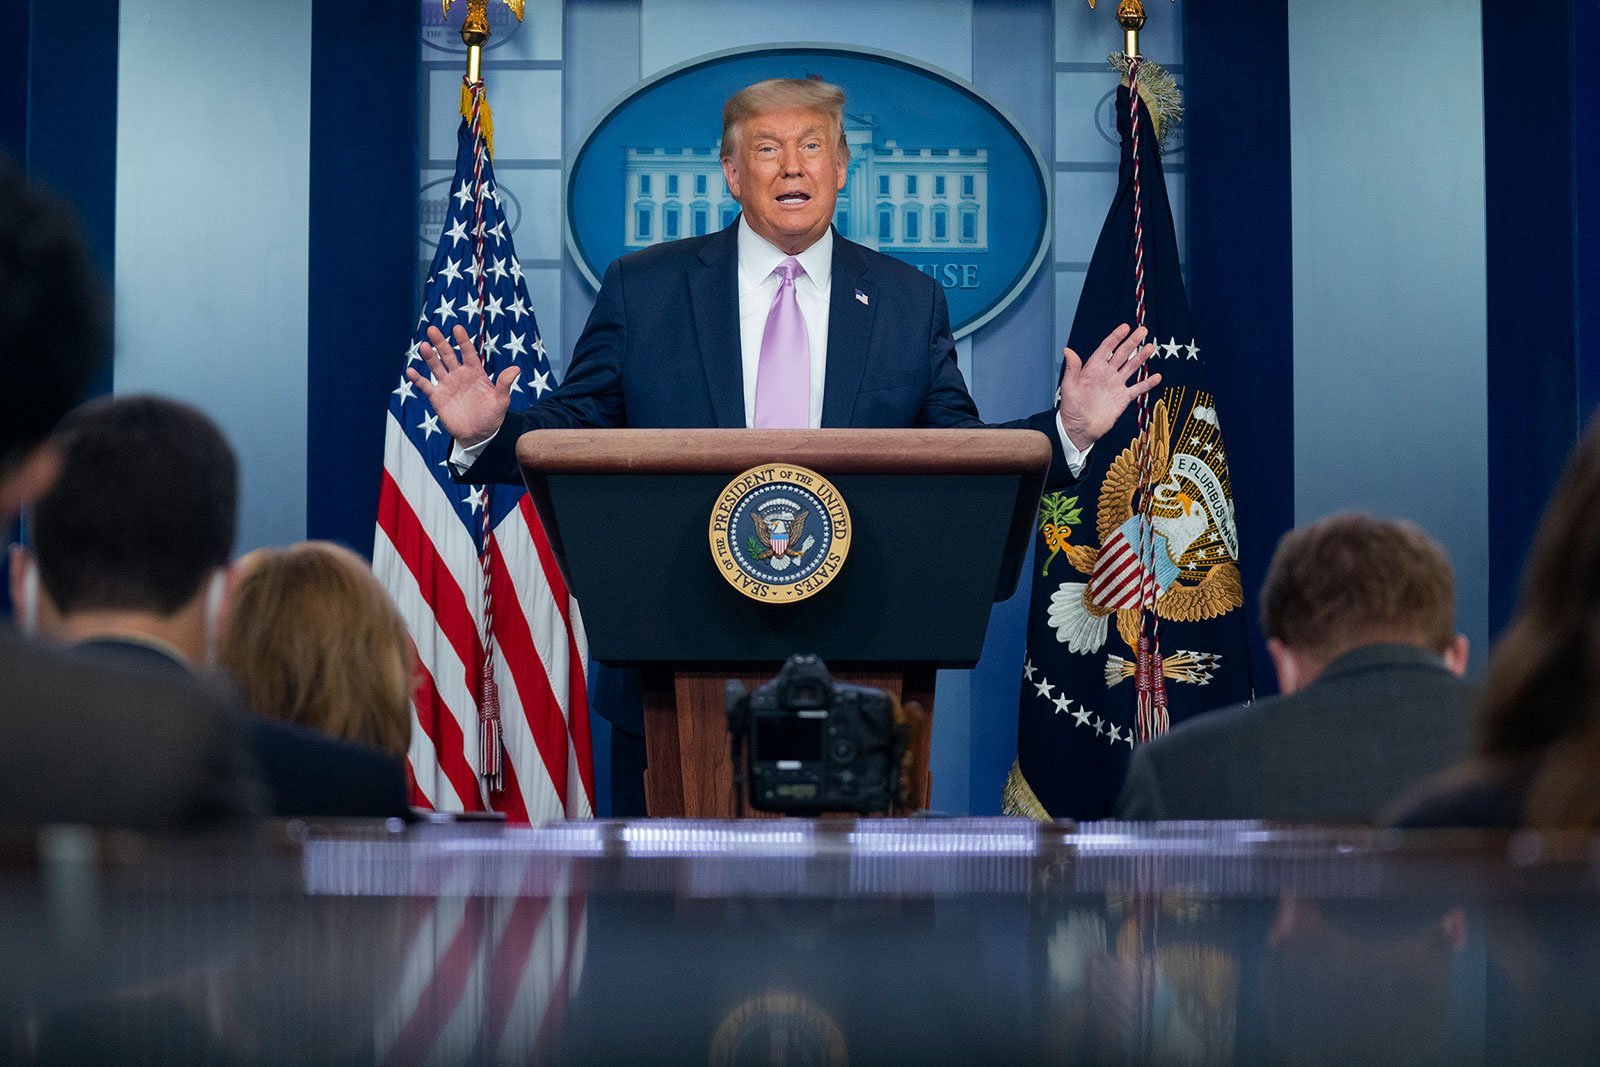 President Trump speaks at a news conference at the White House on Tuesday.